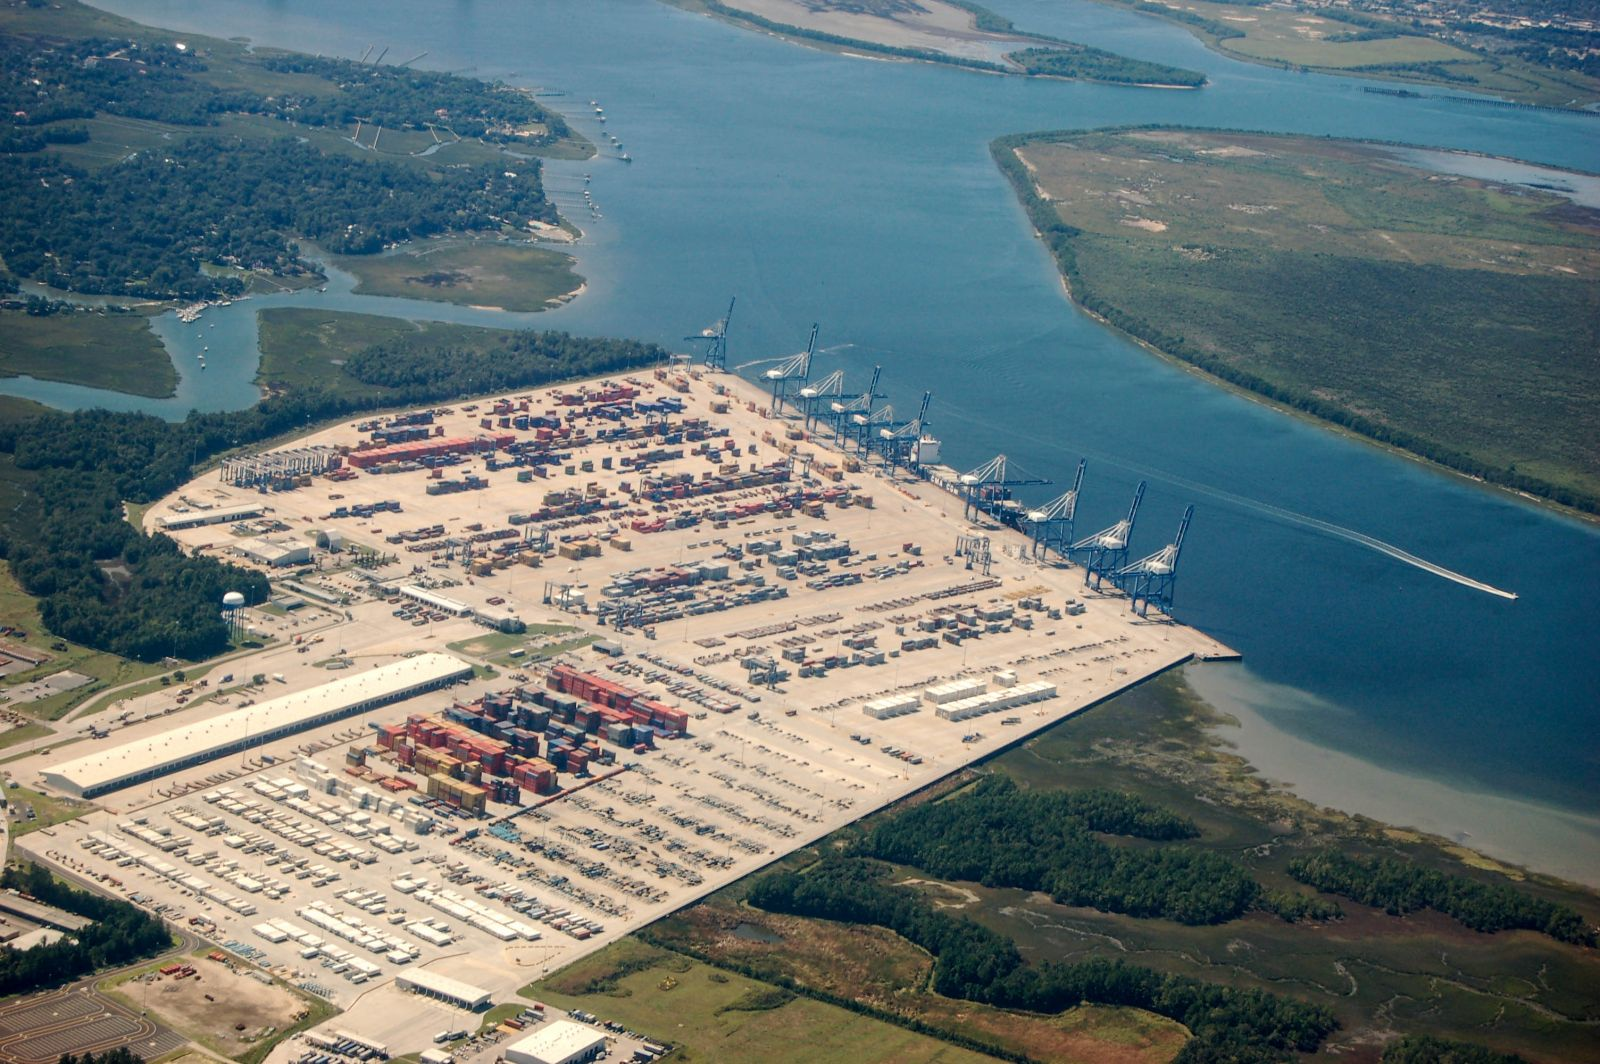 The Wando Welch Terminal is viewed from the air. The S.C. Ports Authority reported a 13% increase in the number of pier containers moved in August compared to last year. (Photo/file)